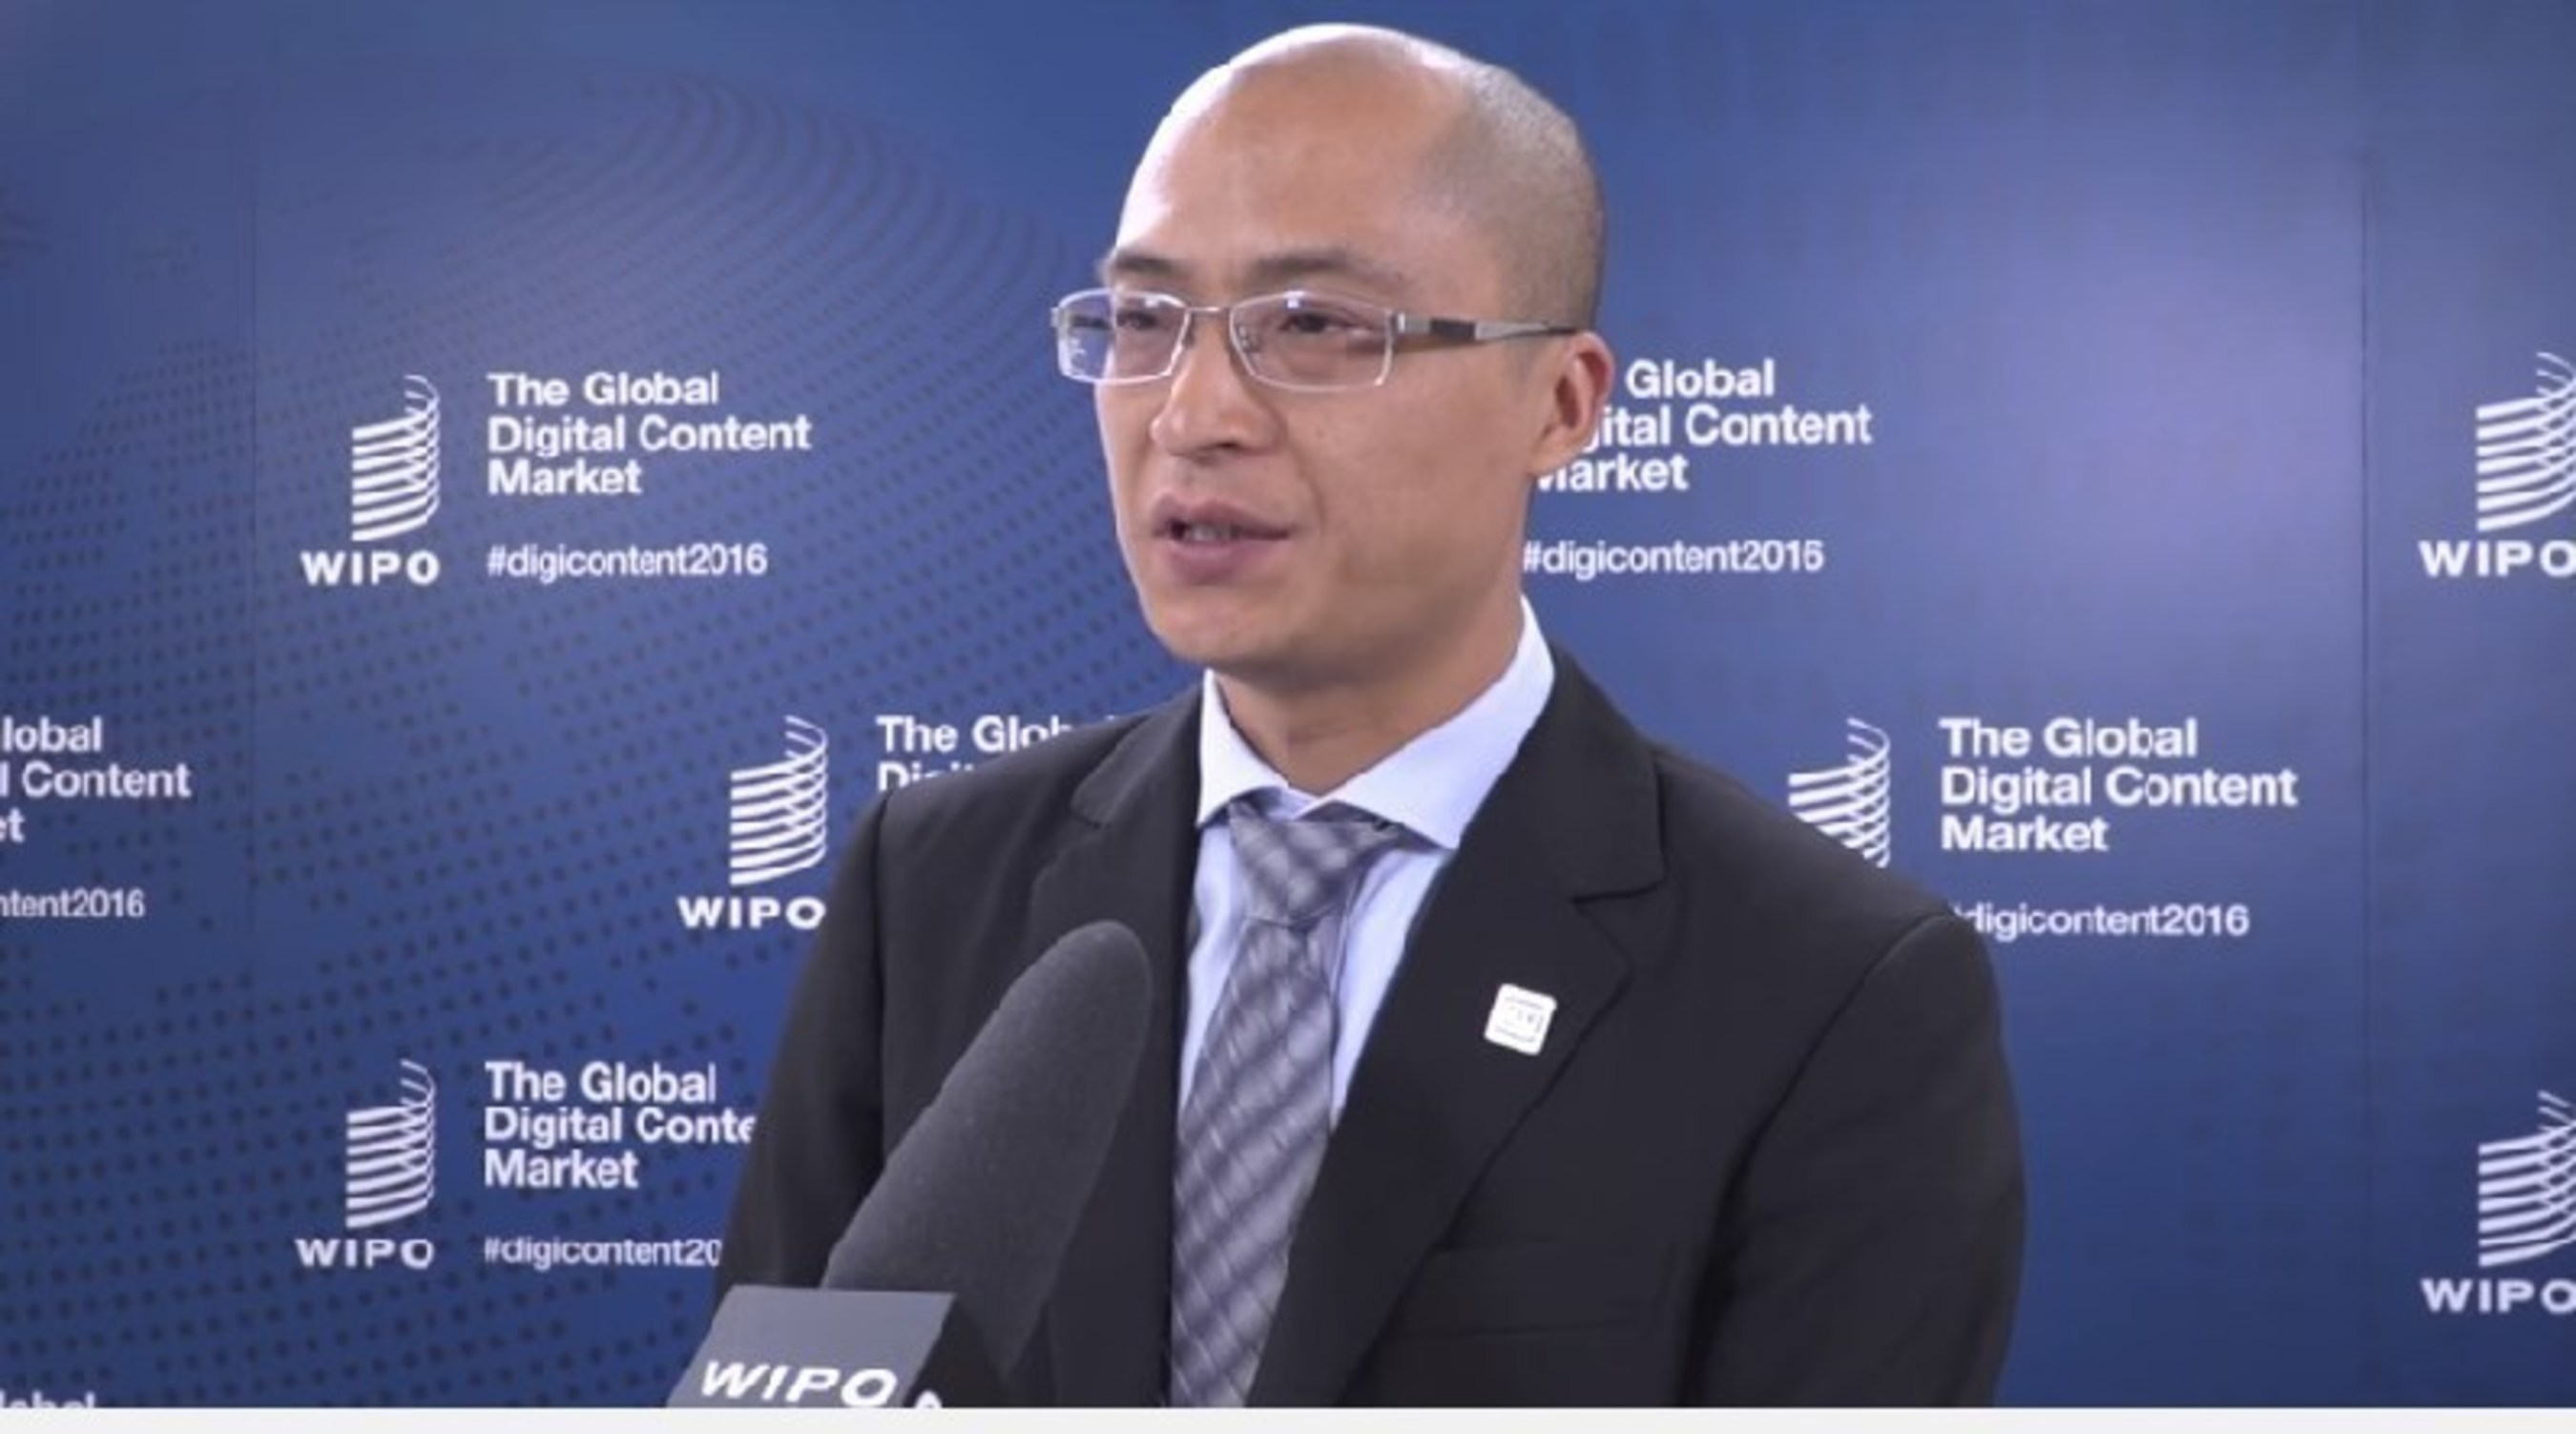 iQIYI SVP Discusses Digital IP Development at WIPO Conference on the Global Digital Content Market